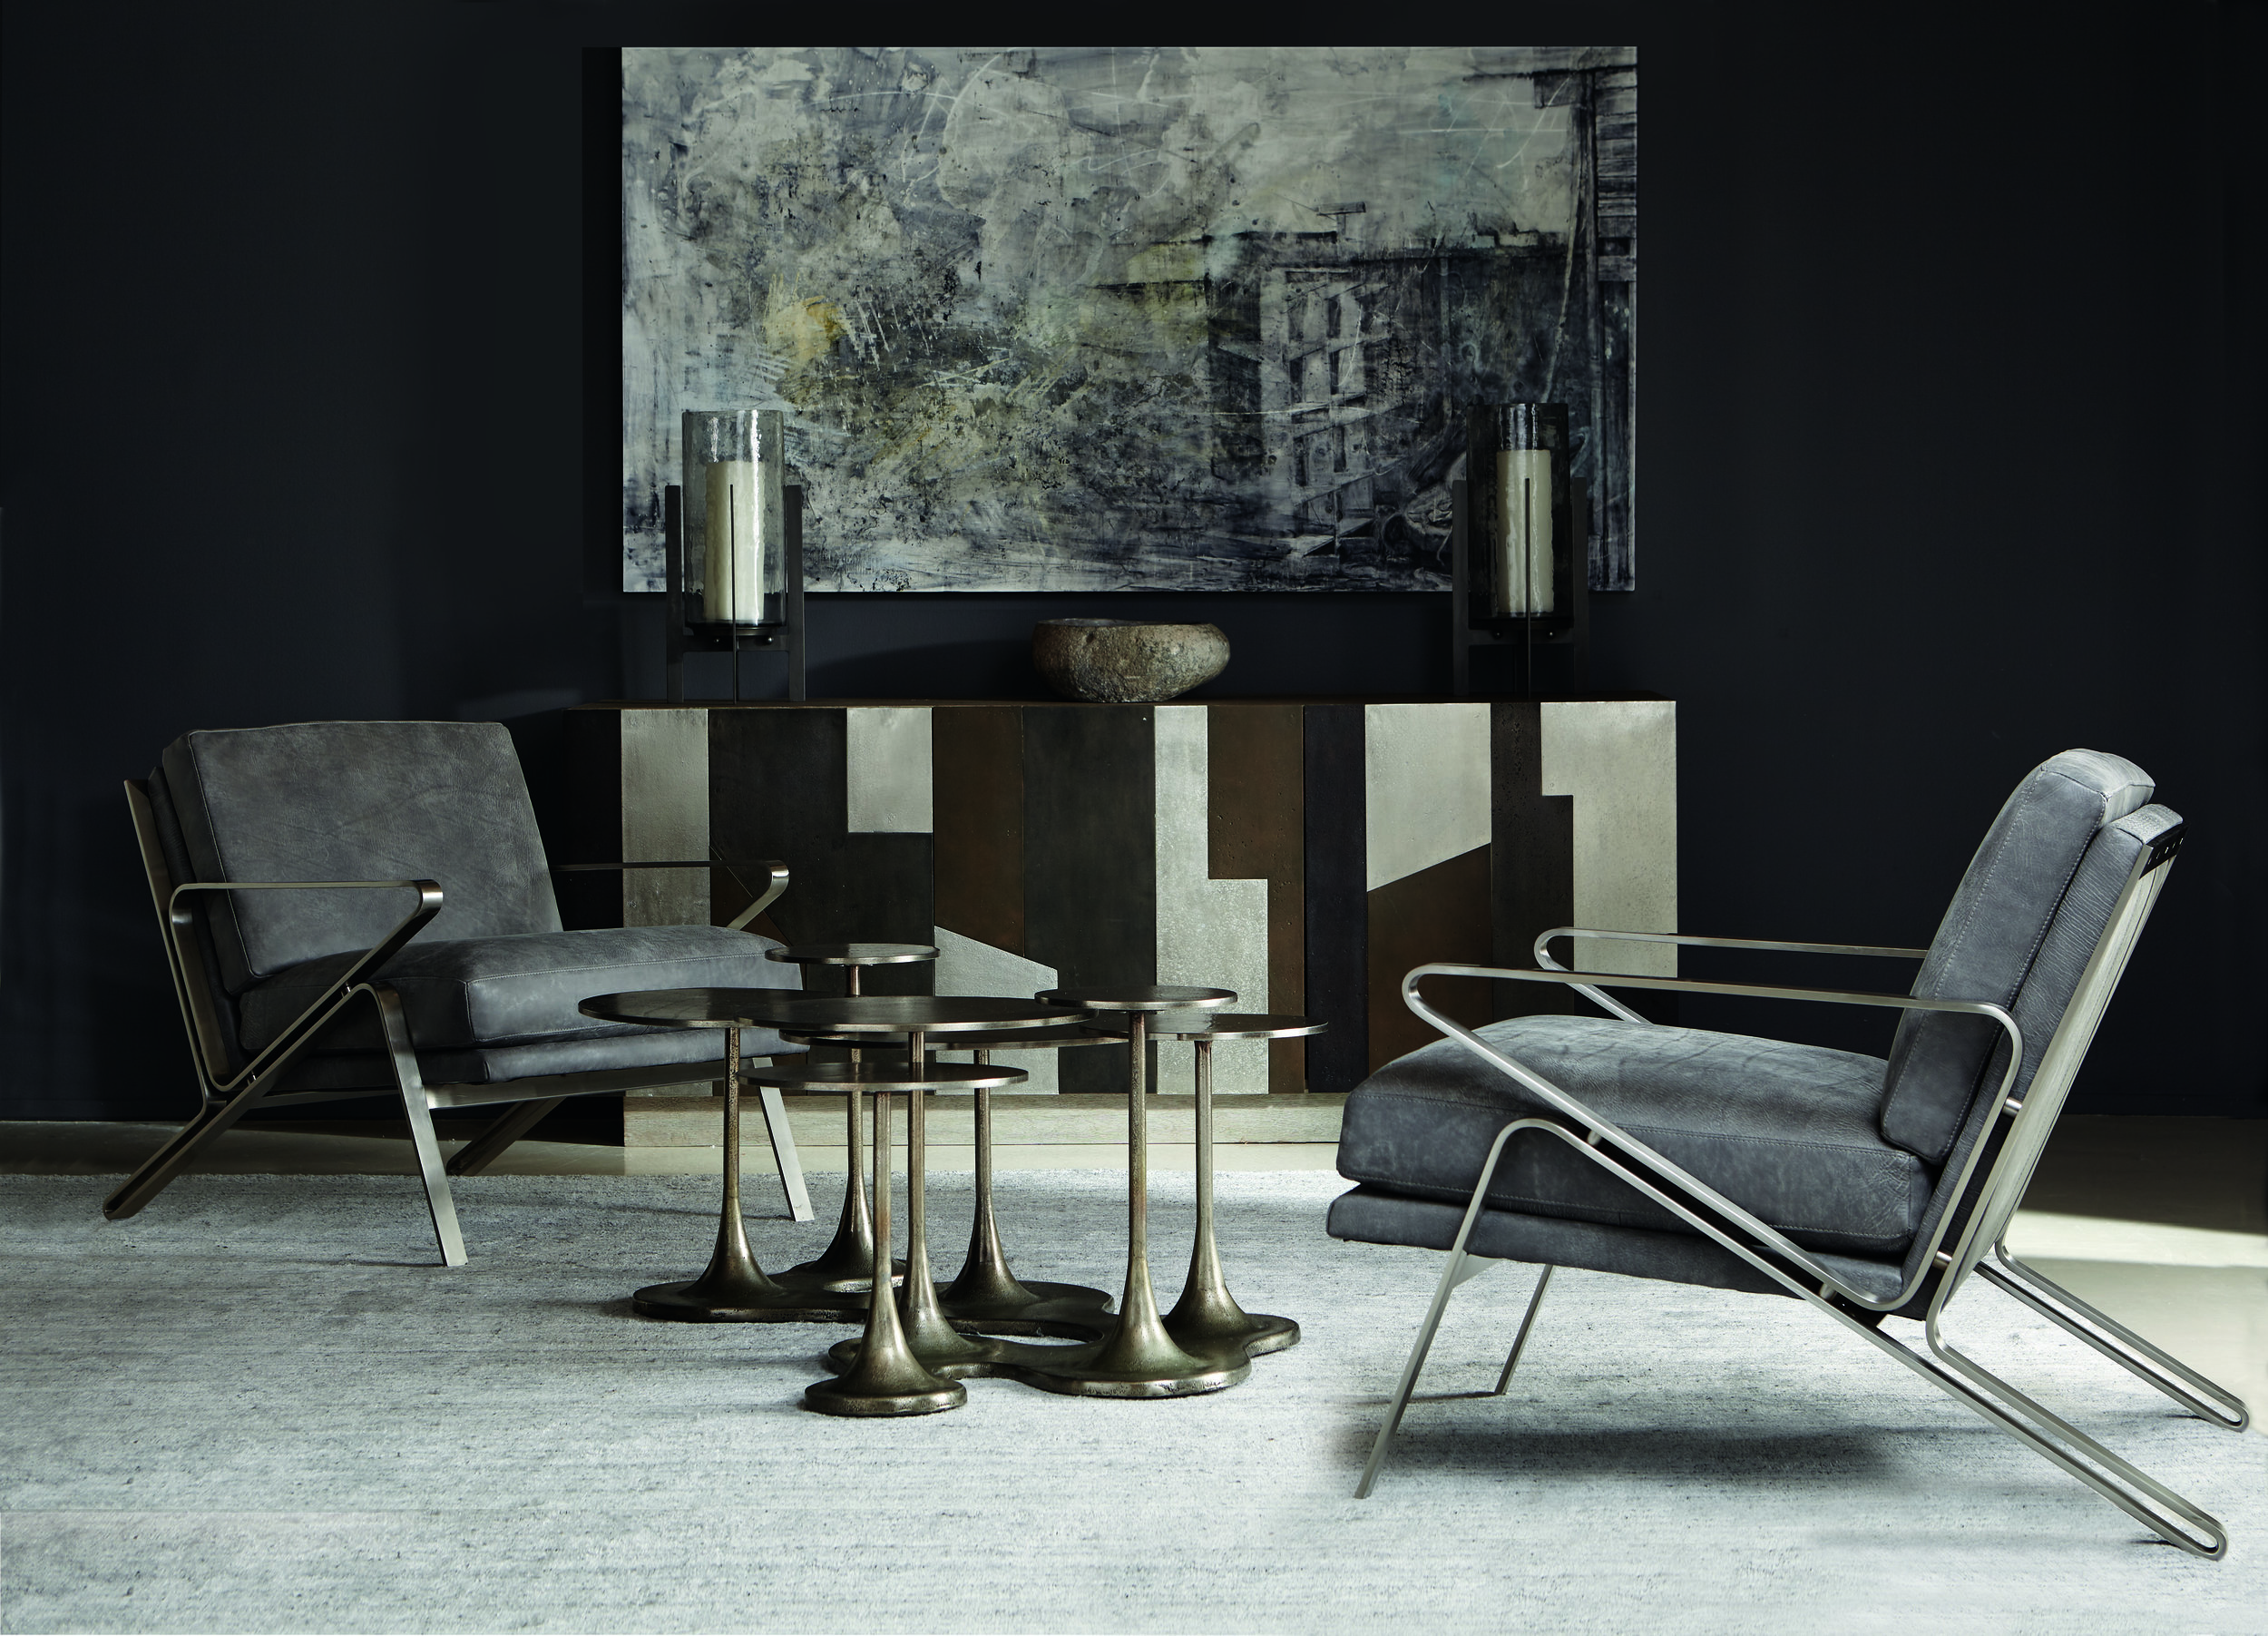 Mid-Summer Fine Design Event - Fine design makes bold statements and combines premium function, sophisticated form and beautiful freedom of expression. And now, thru August 3rd, finely designed home furnishings are yours at truly stunning once-a-year savings.For every room and every style. Our mid-summer event features savings up to 50% OFF on more than 3,000 creations from the finest makers available. Experience Seville Home today and make your mid-summer dreams come true!More Details